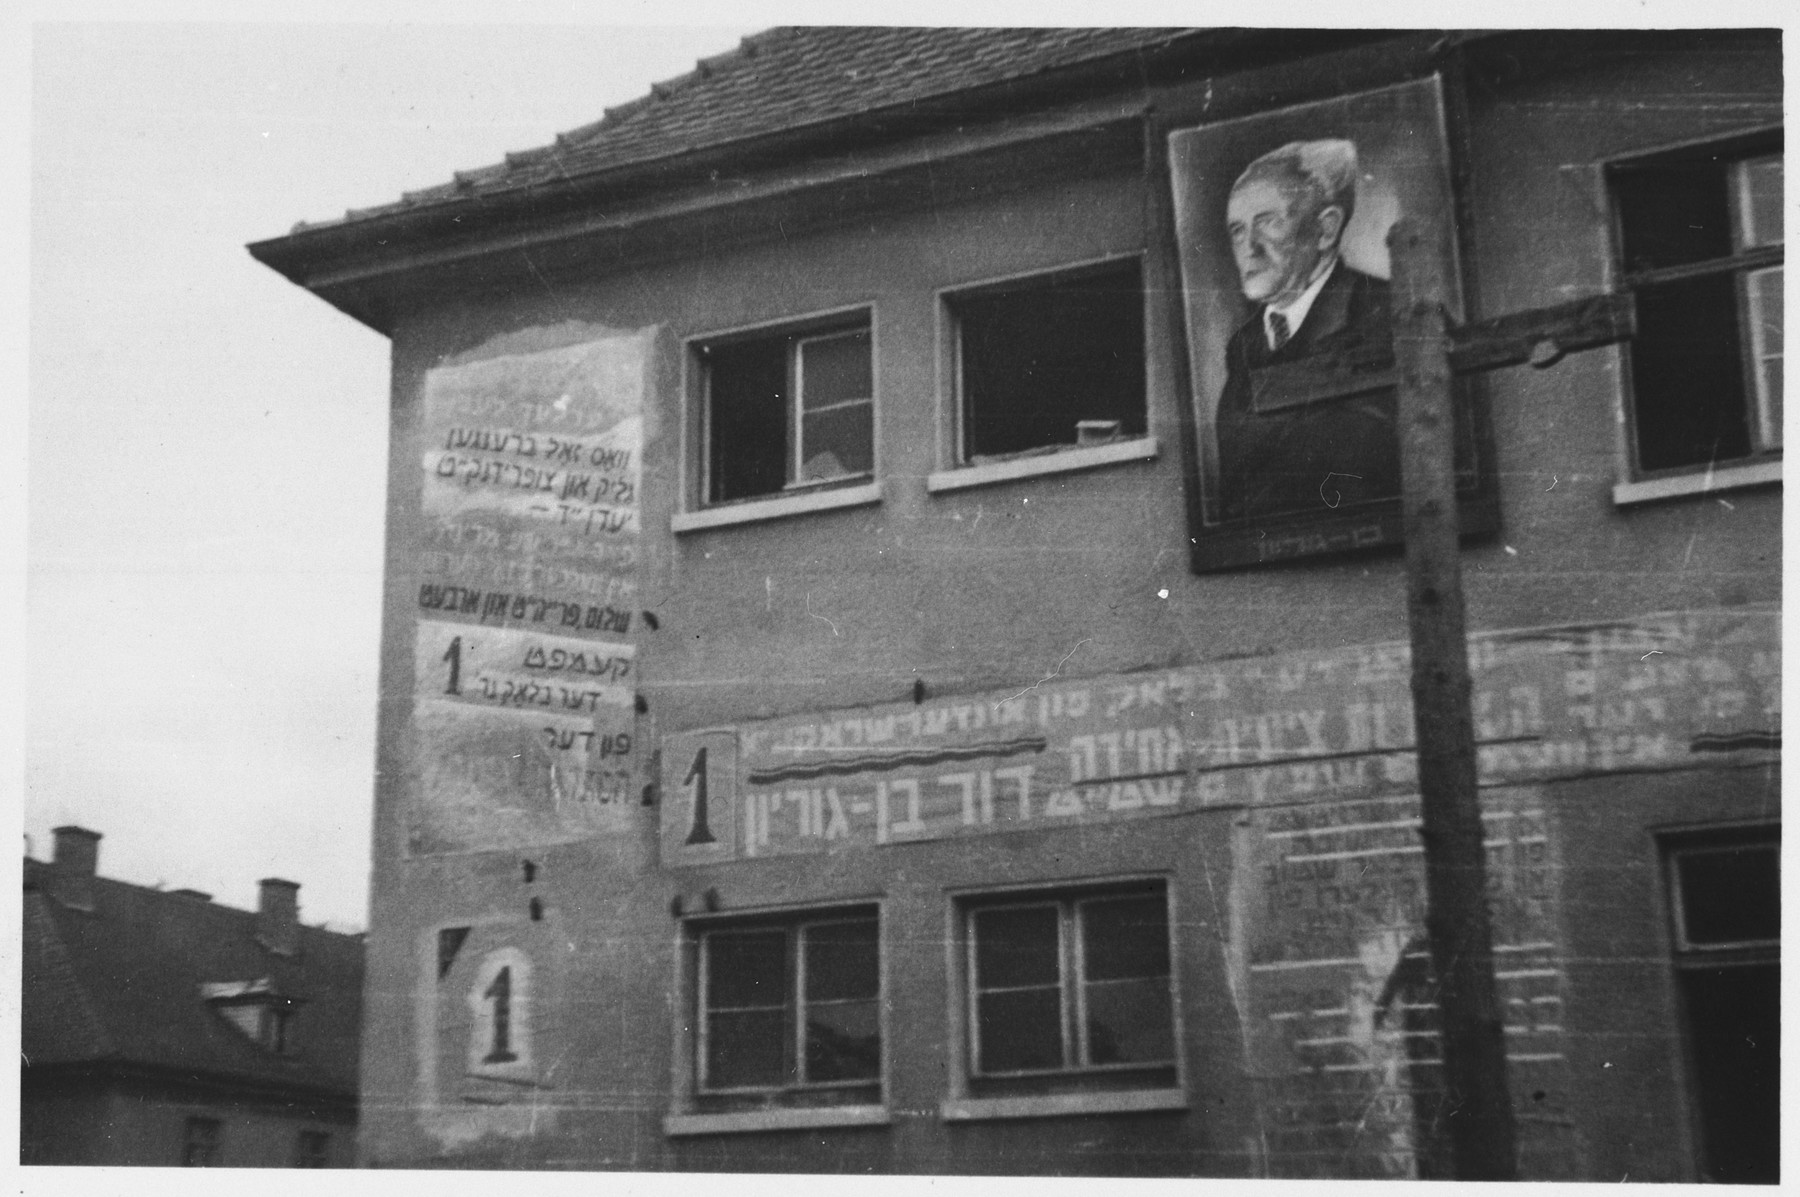 Assorted election posters and a portrait of David Ben-Gurion are posted on the outside wall of a barracks in the Bergen-Belsen displaced persons camp.